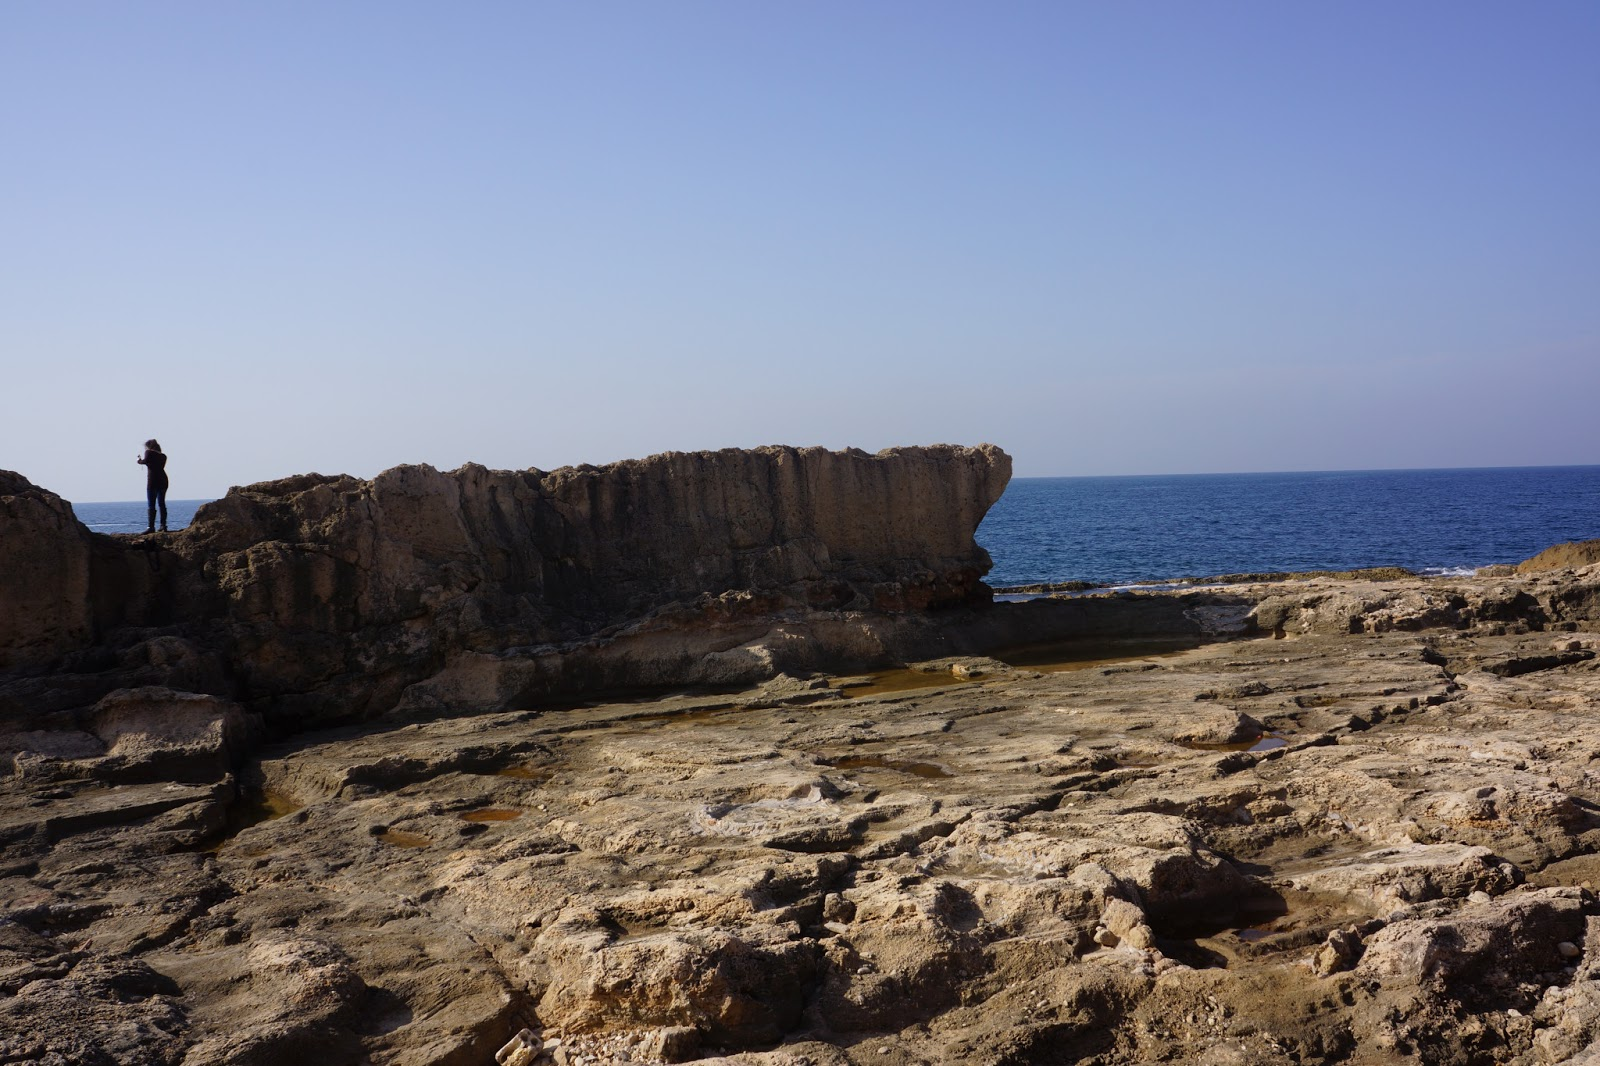 The ancient maritime wall built by the phoenicians in Batroun, Lebanon.